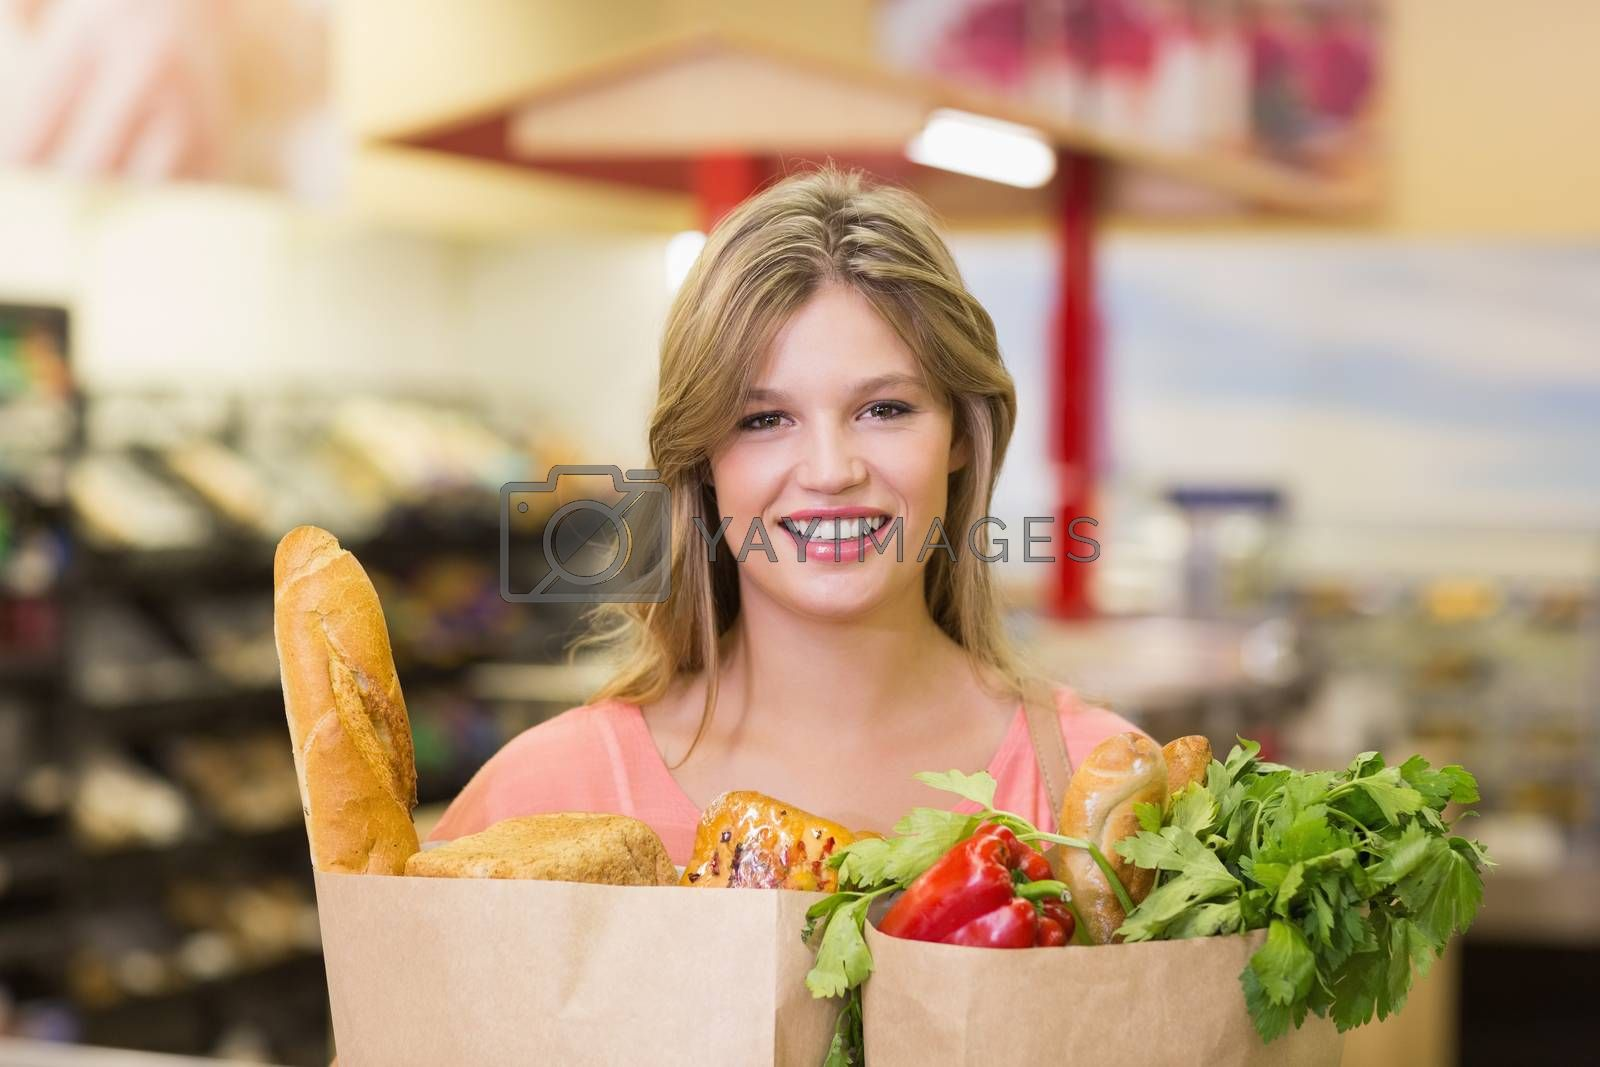 Royalty free image of Portrait of smiling pretty blonde woman buying food products by Wavebreakmedia